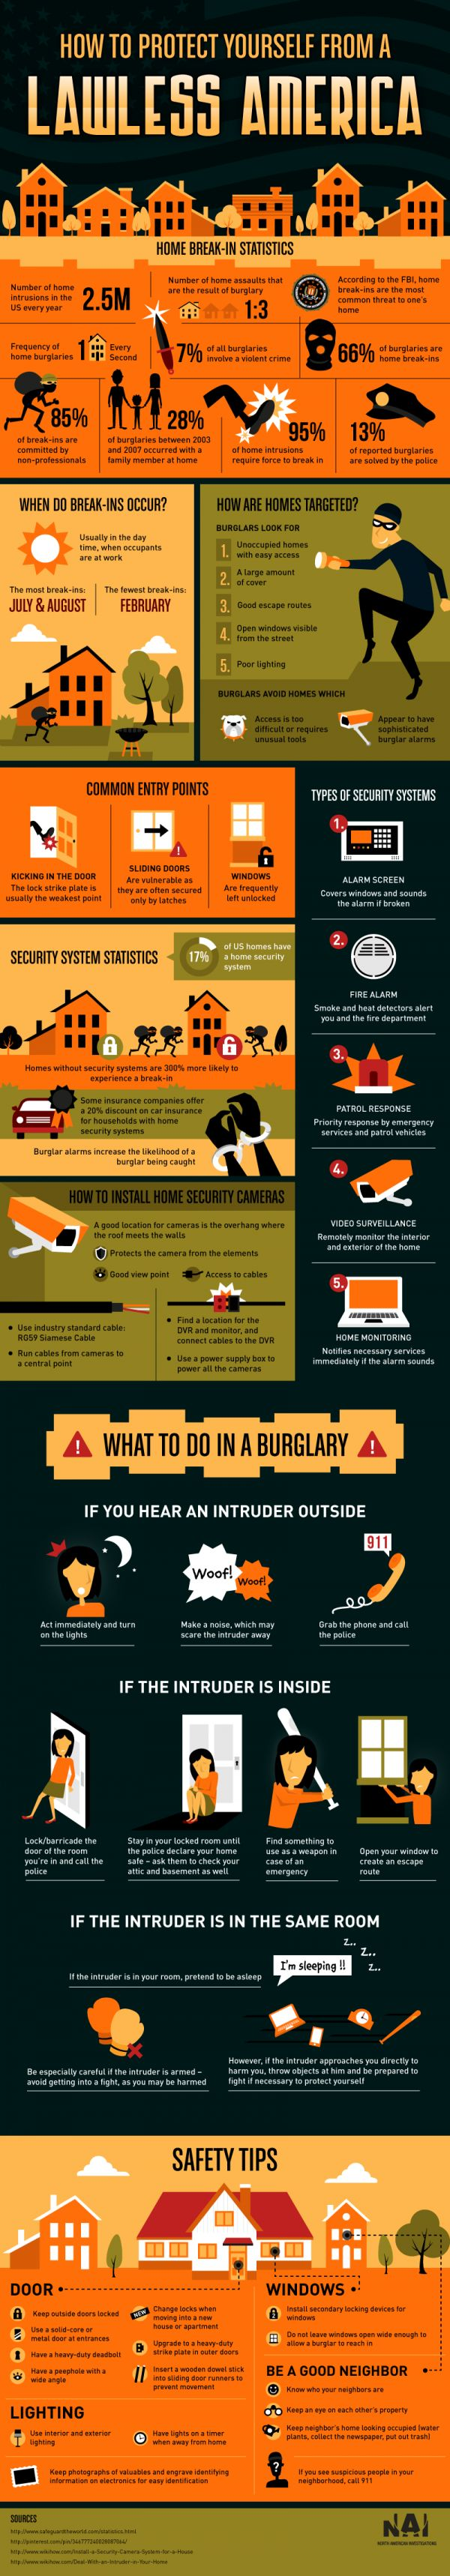 How to prevent a home invasion [infographic]